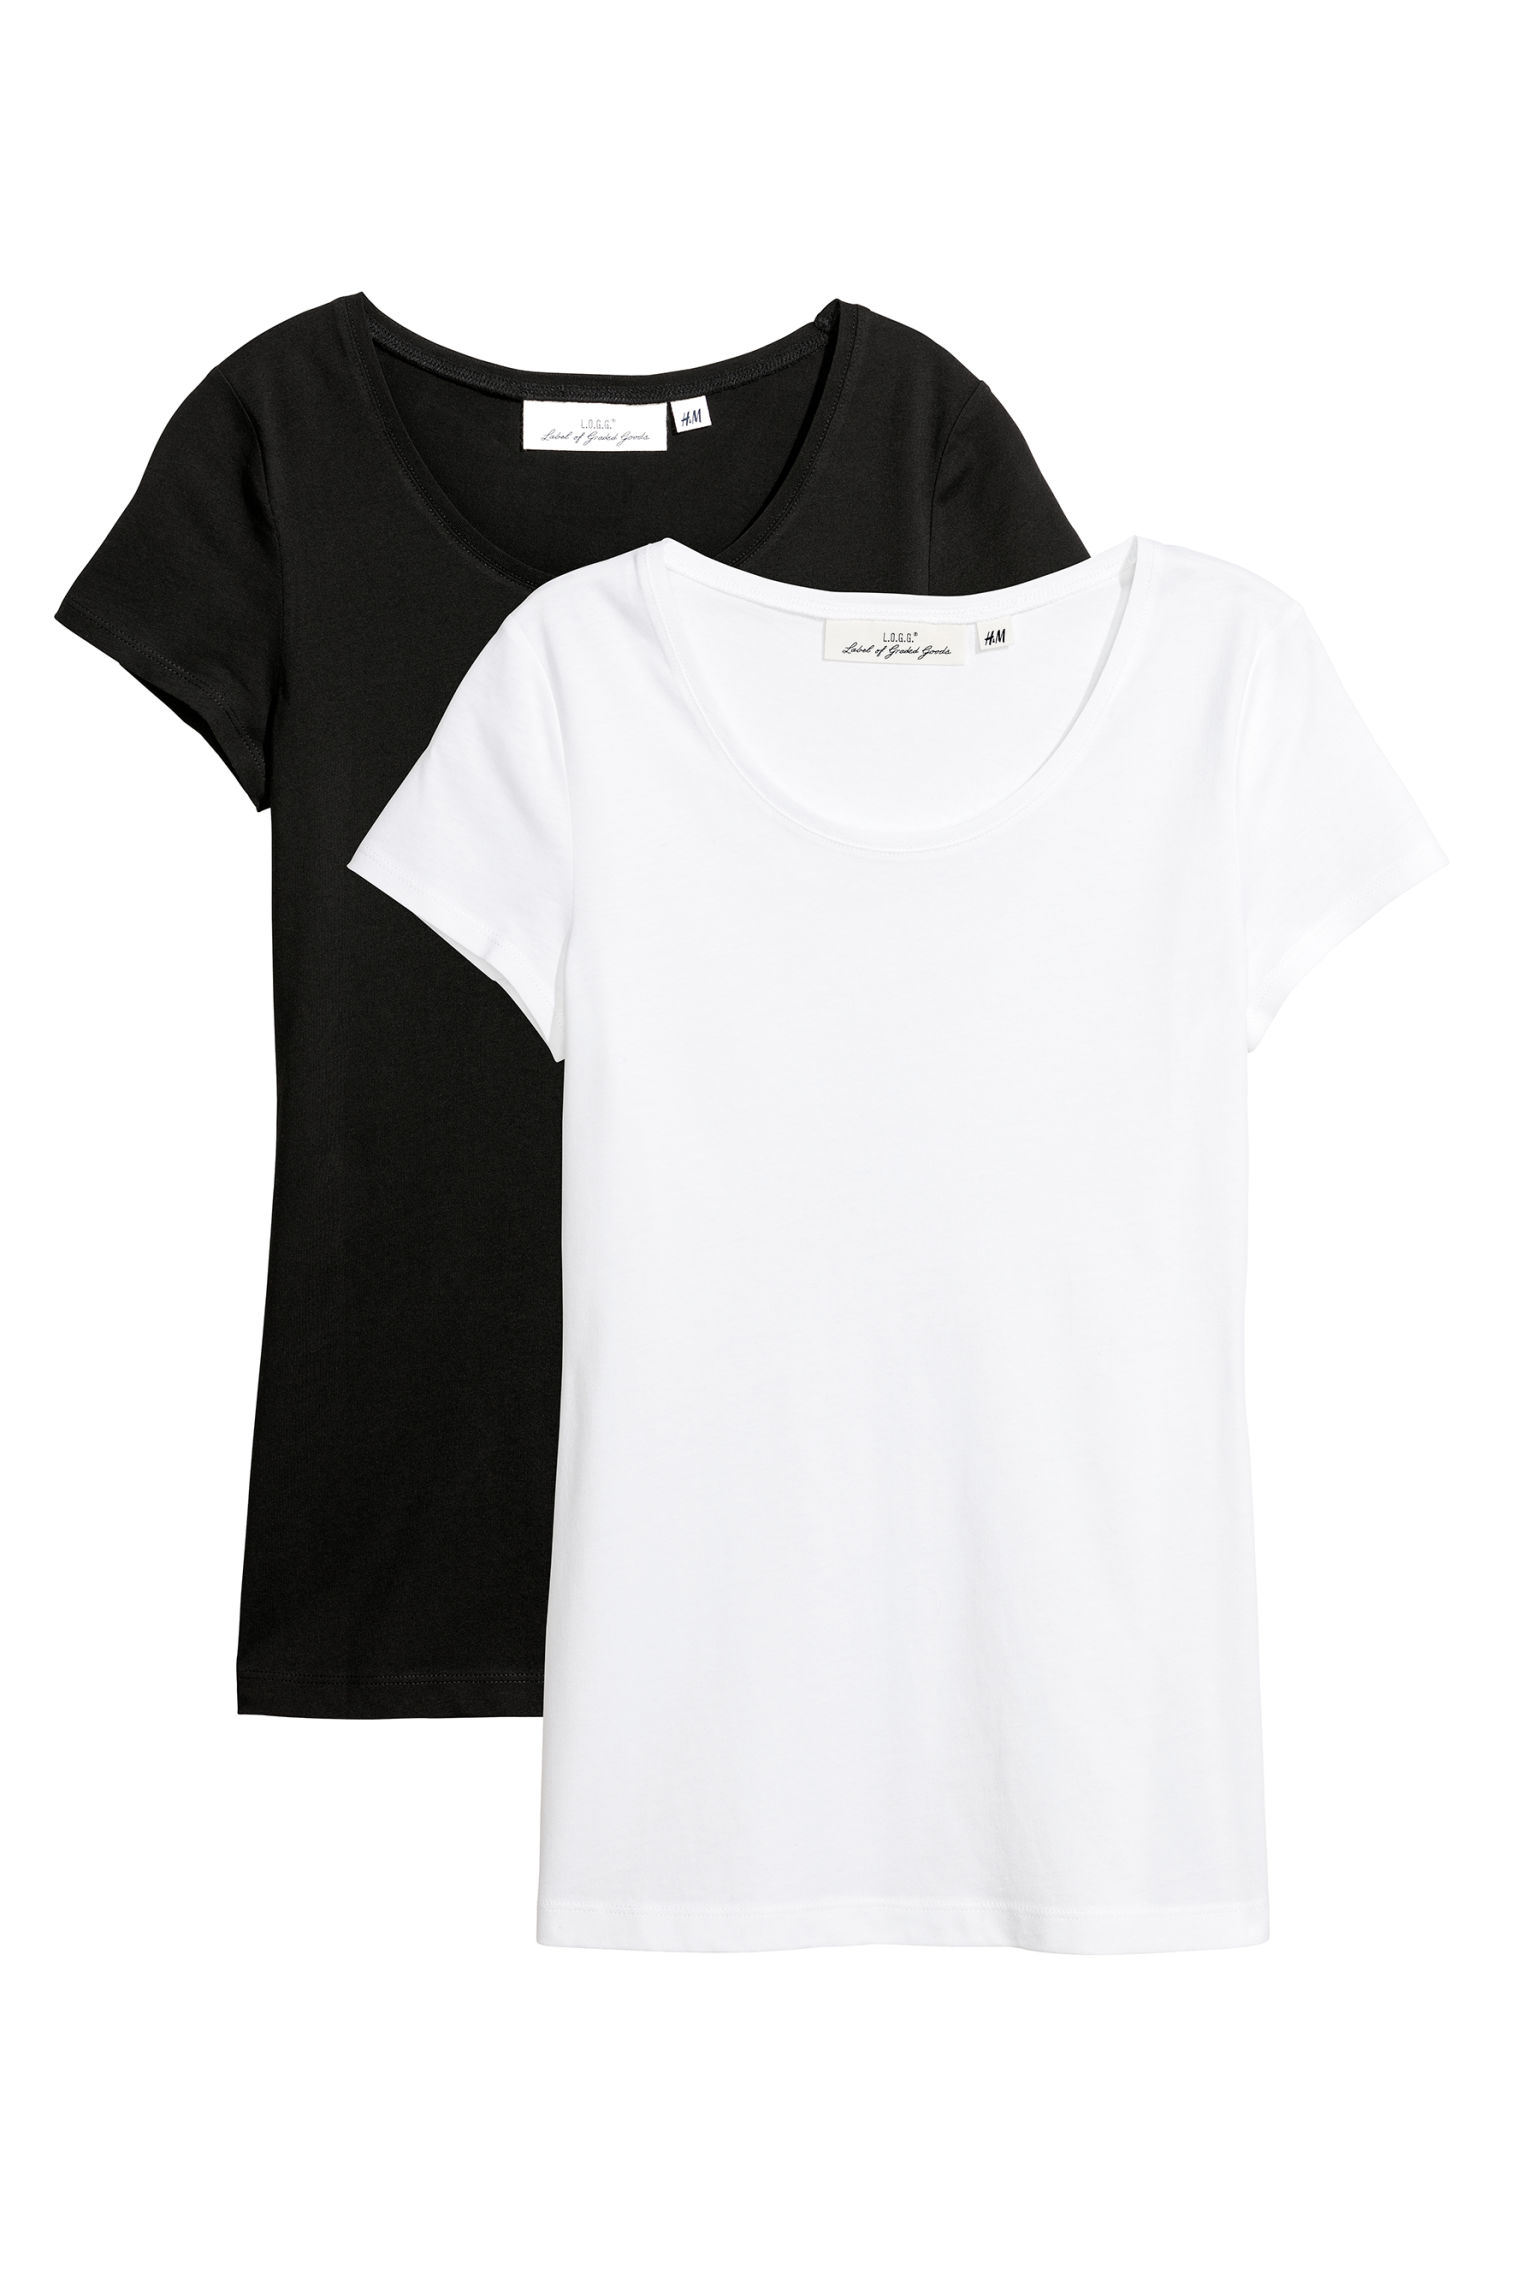 55774da0bb2d ... zoomDouble tap image to zoom. 2-pack short-sleeved tops ...